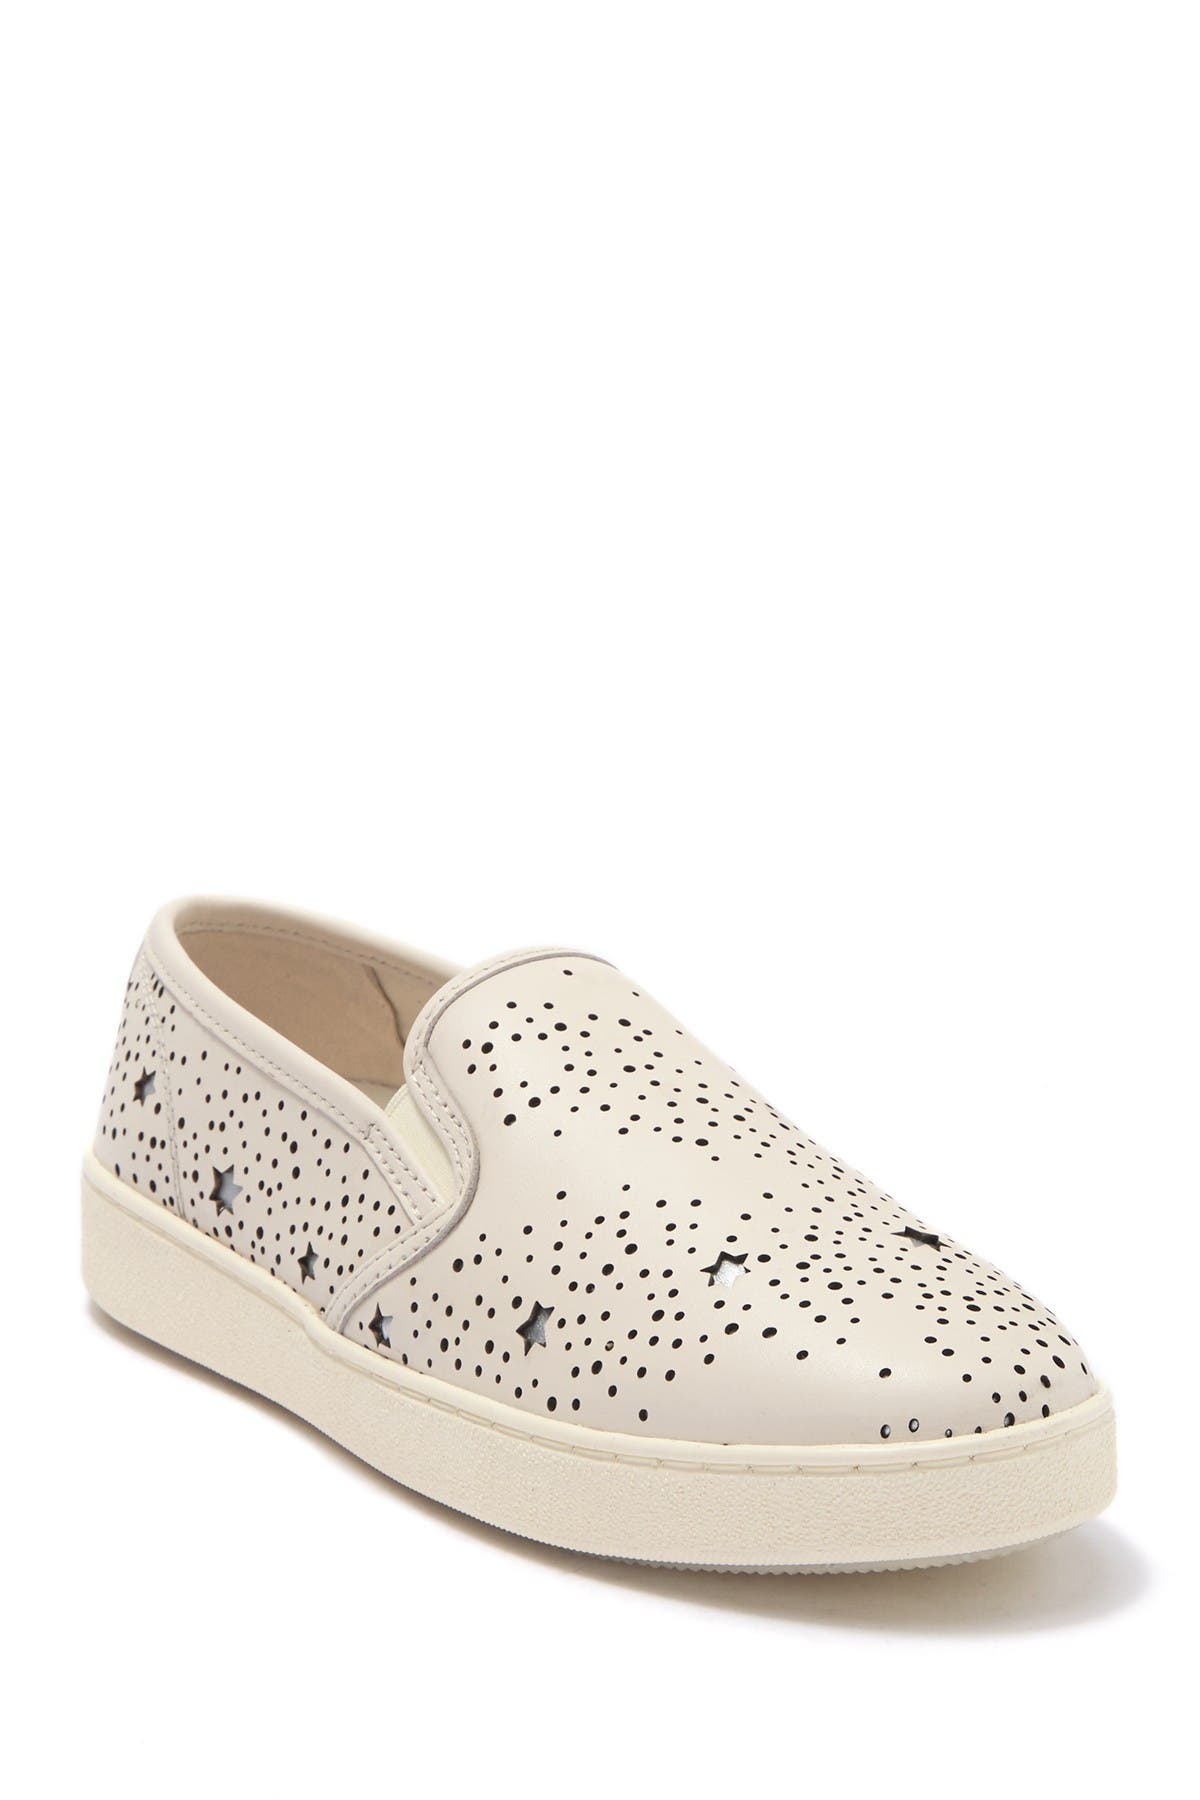 nordstrom rack baby boy shoes